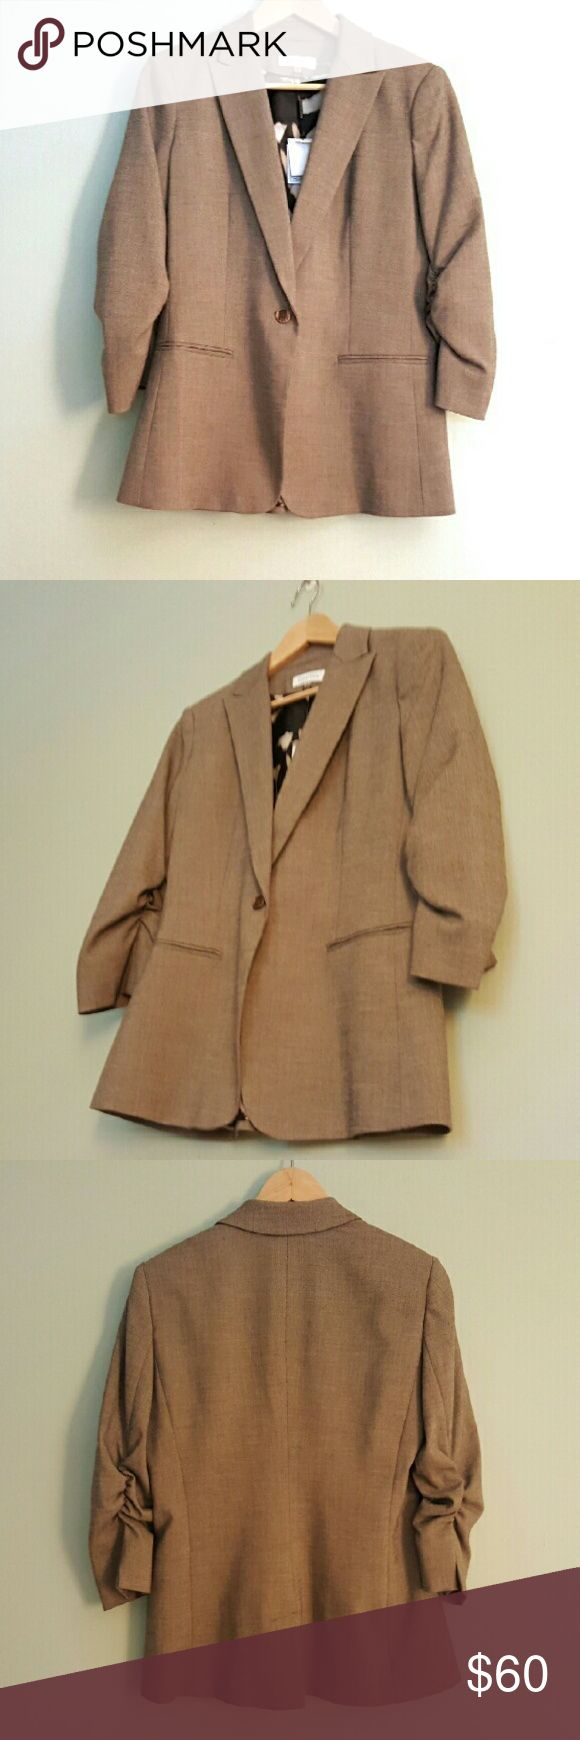 Calvin Klein Tan Ruched Sleeve Boyfriend Jacket 6 This chic blazer features ruched sleeves and a single button. Brand new with tags. Size 6. Calvin Klein Jackets & Coats Blazers